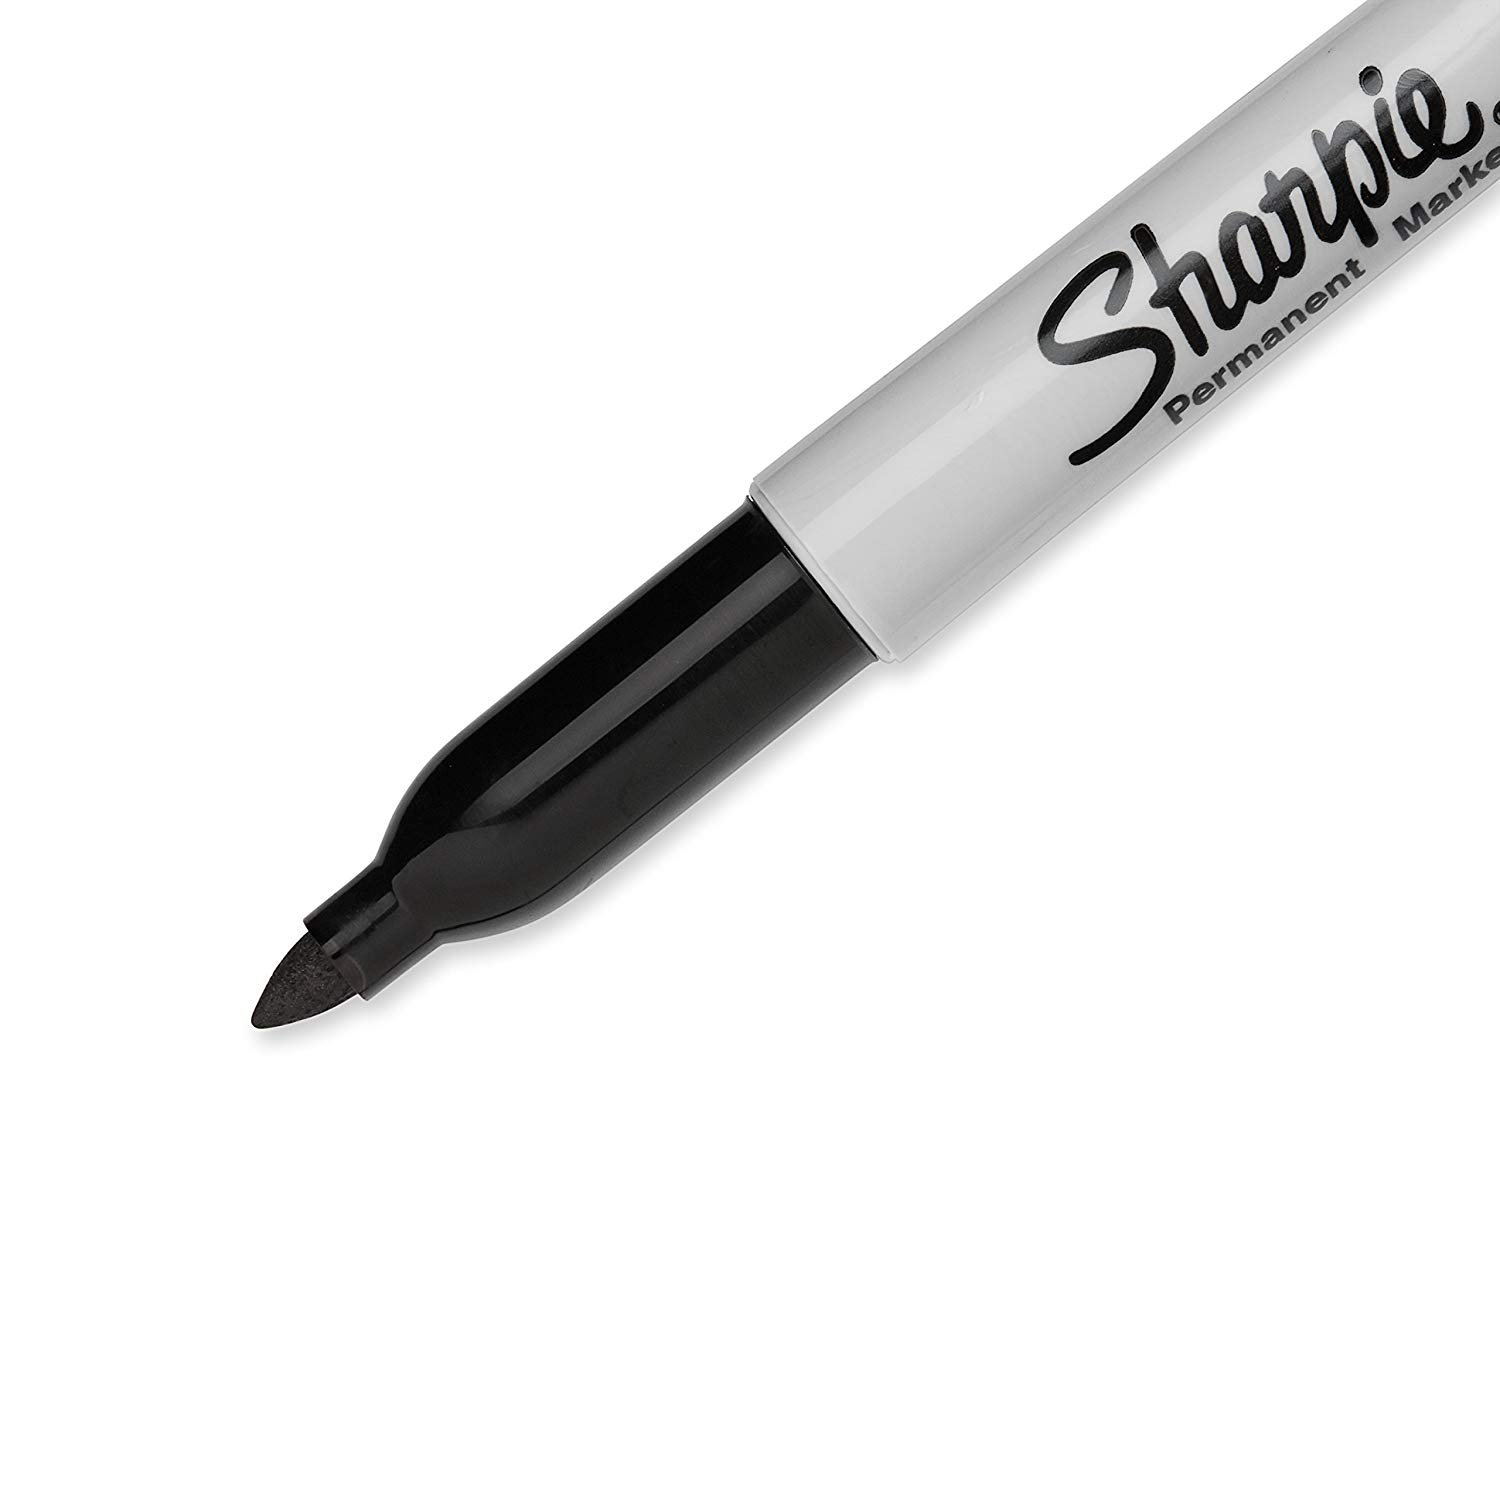 Sharpie Permanent Markers, Fine Point, Black, 36 Count, 2 Pack by Sharpie (Image #4)